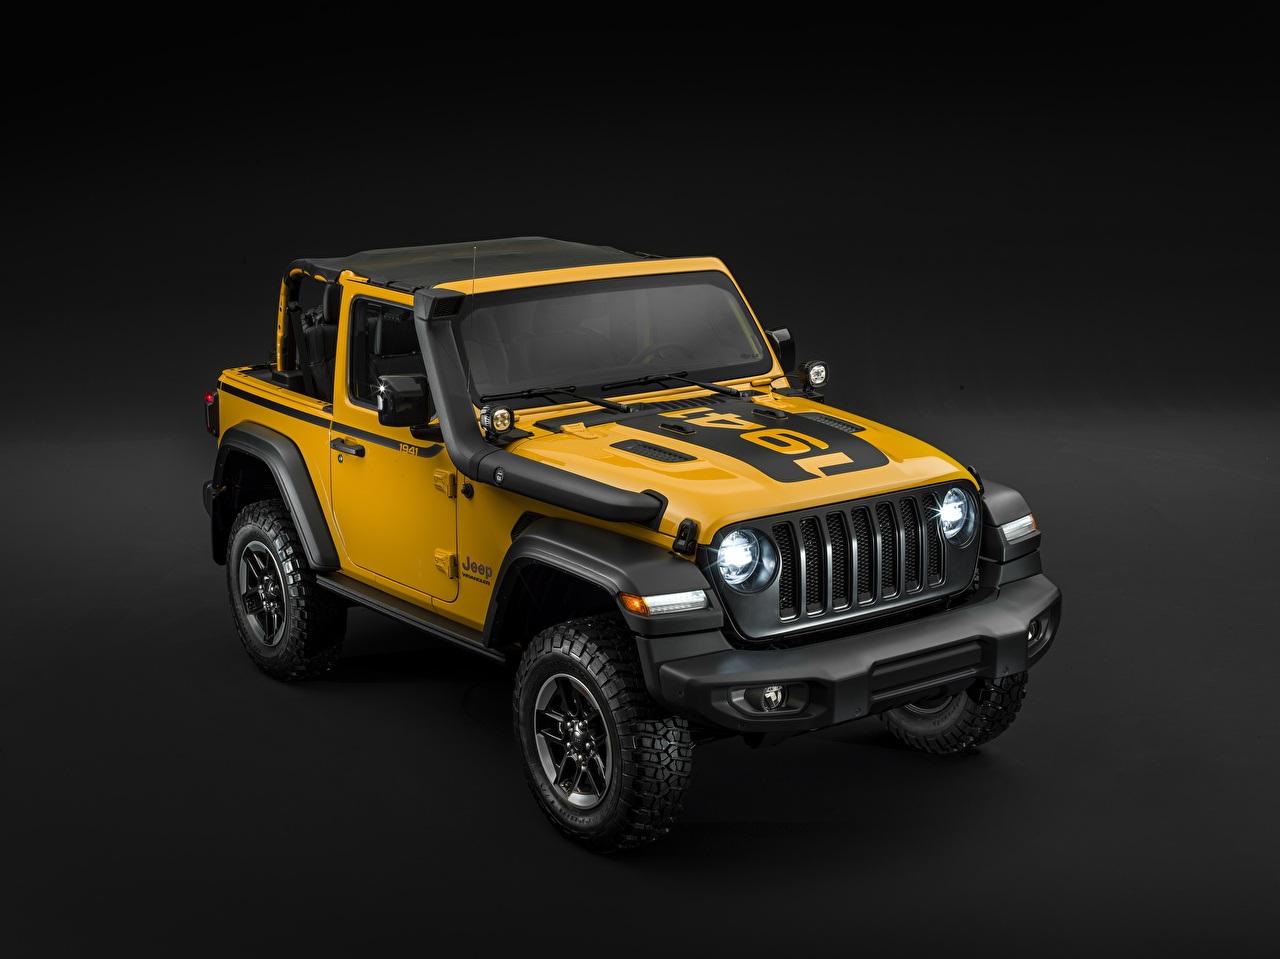 Pictures Jeep Tuning 2019 Wrangler Rubicon 1941 by Mopar Yellow automobile Gray background Cars auto